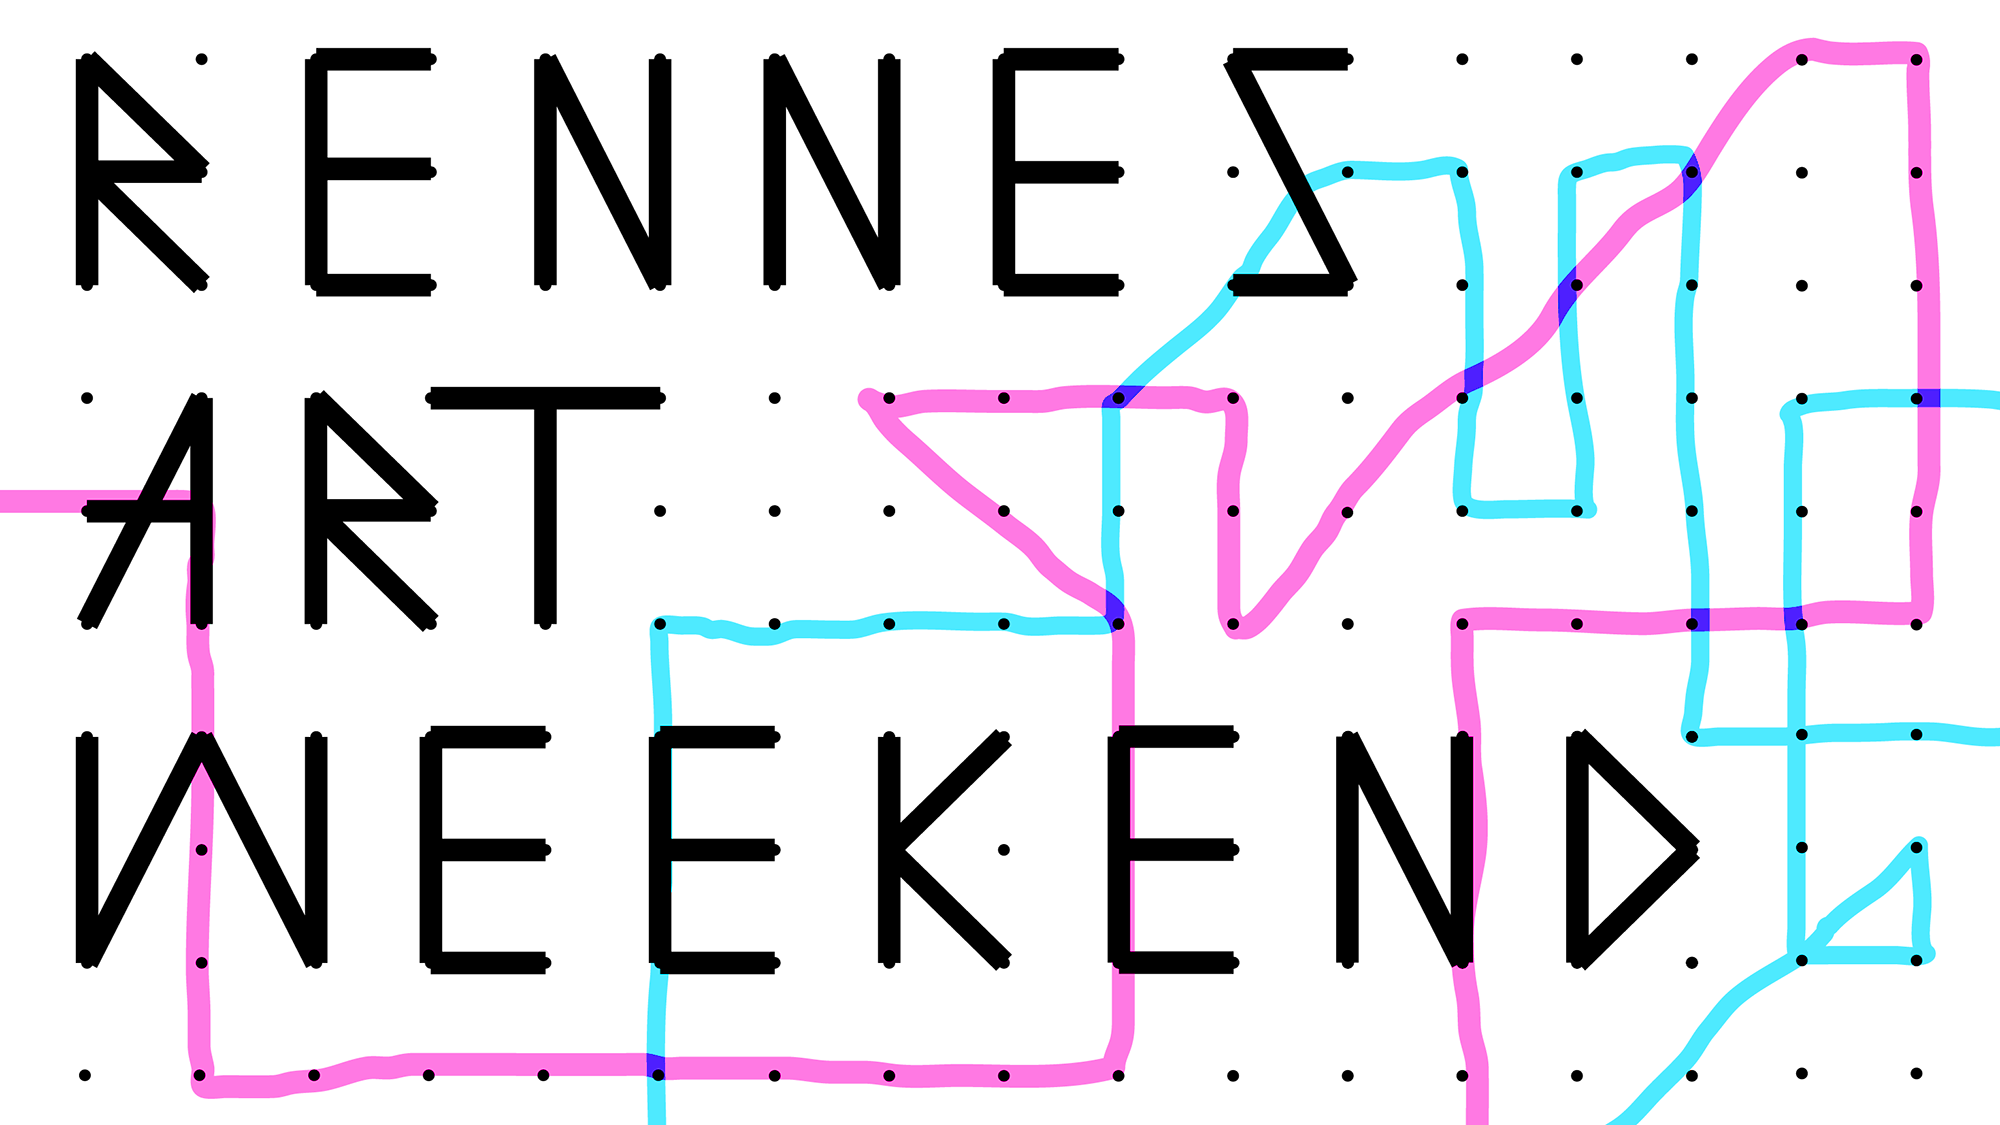 Rennes-Artweekend